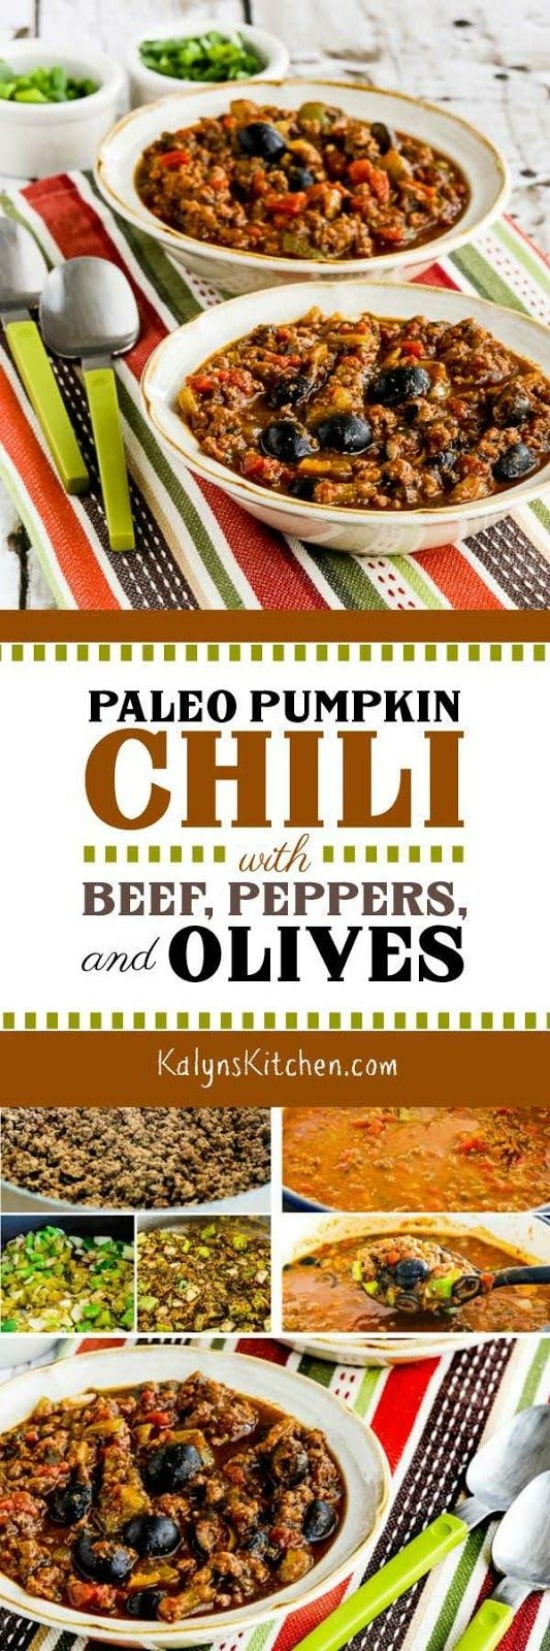 Paleo Pumpkin Chili with Beef, Peppers, and Olives found on KalynsKitchen.com